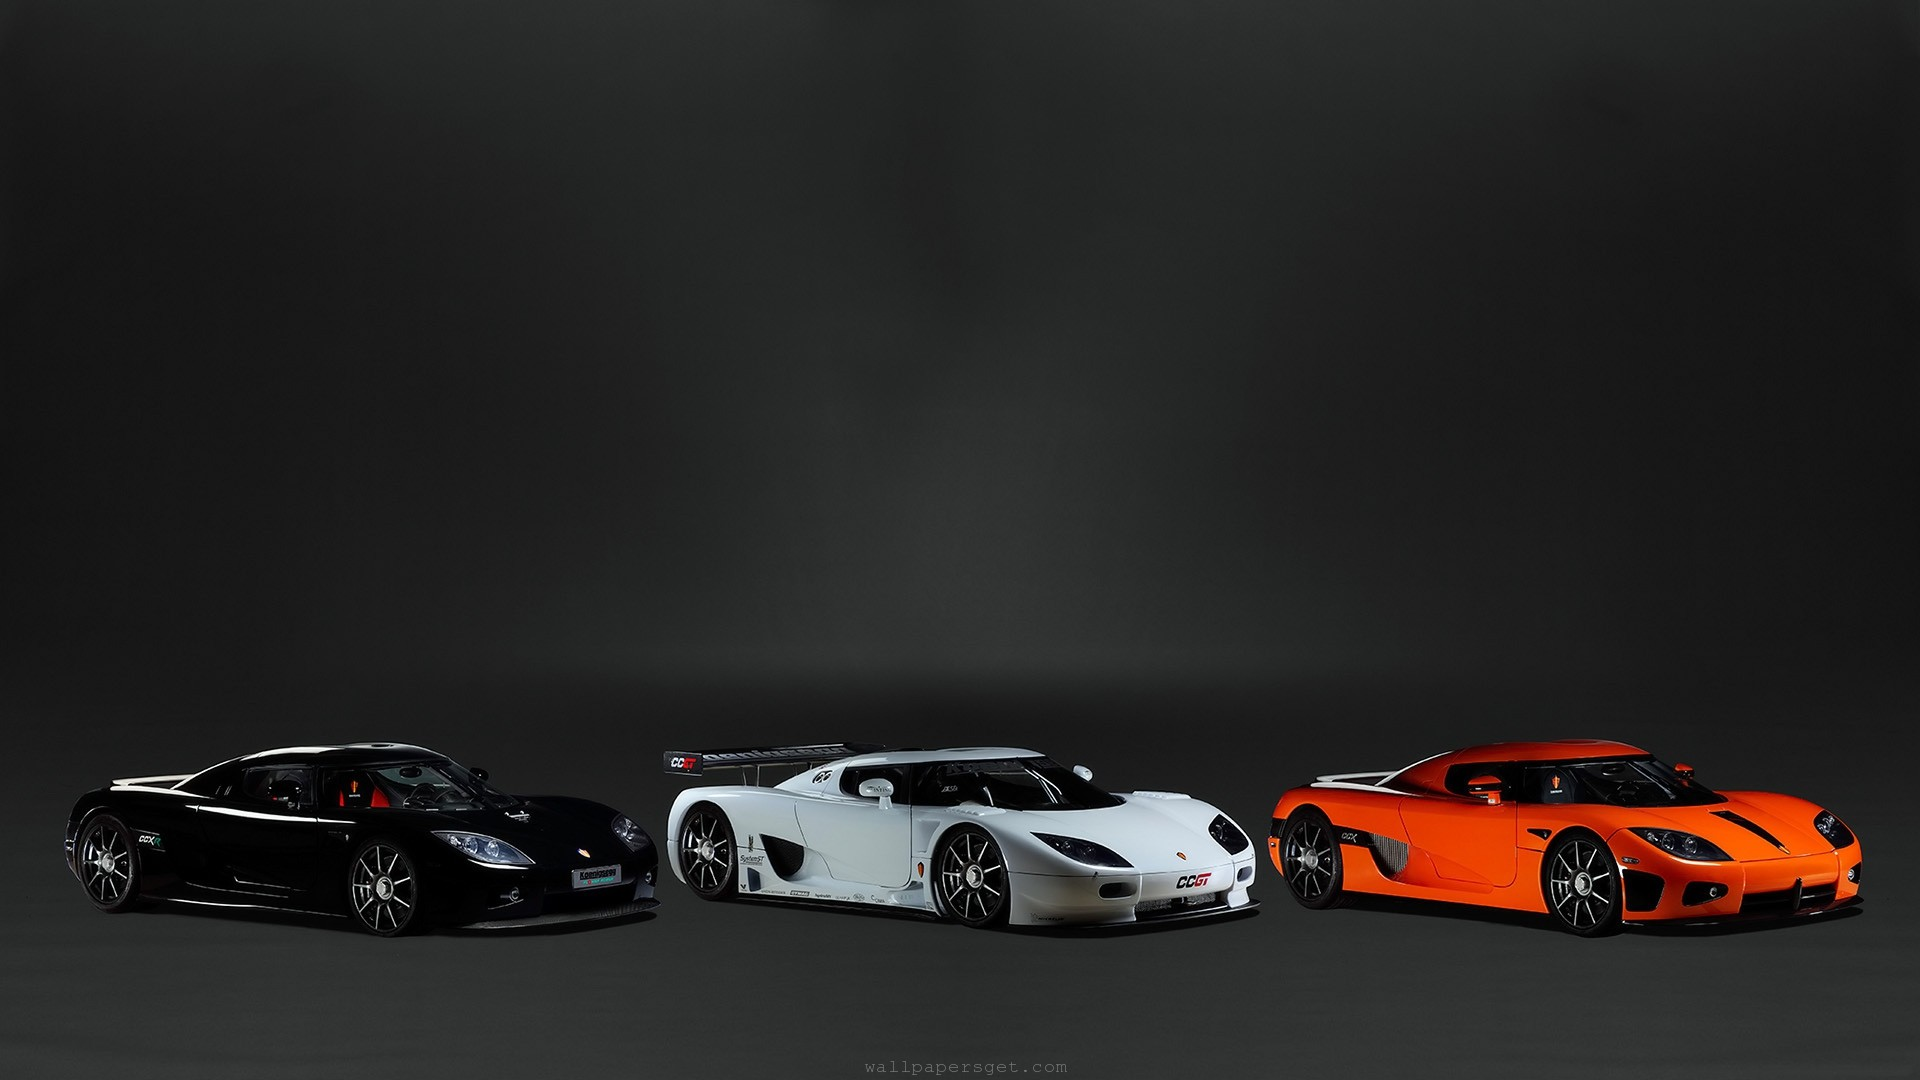 Sweedish Hypercars-Wallpapers